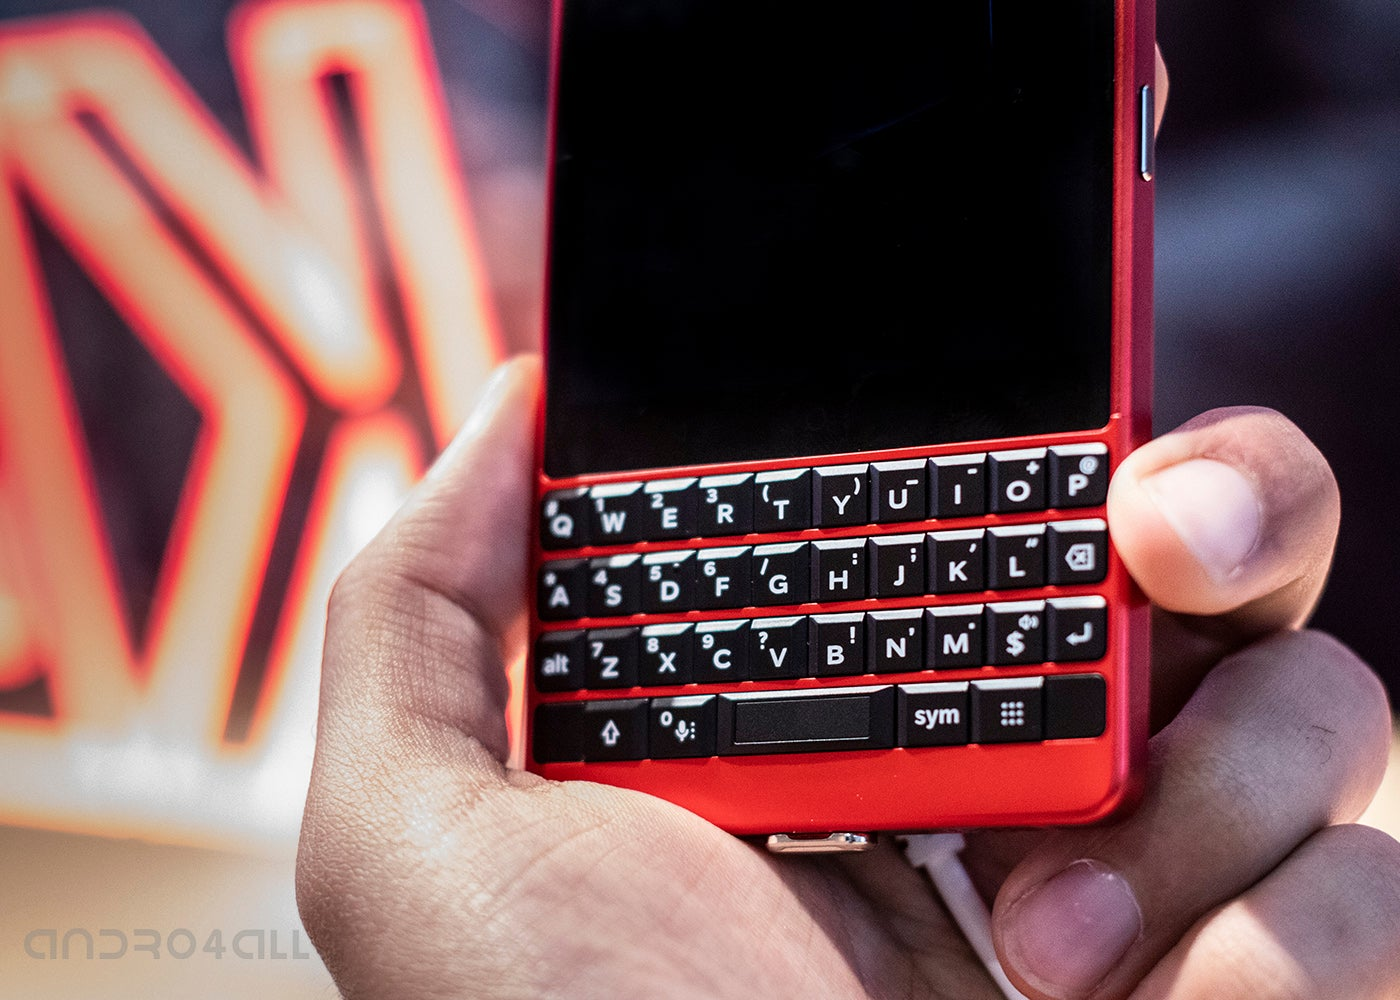 You can still buy BlackBerry phones in 2020